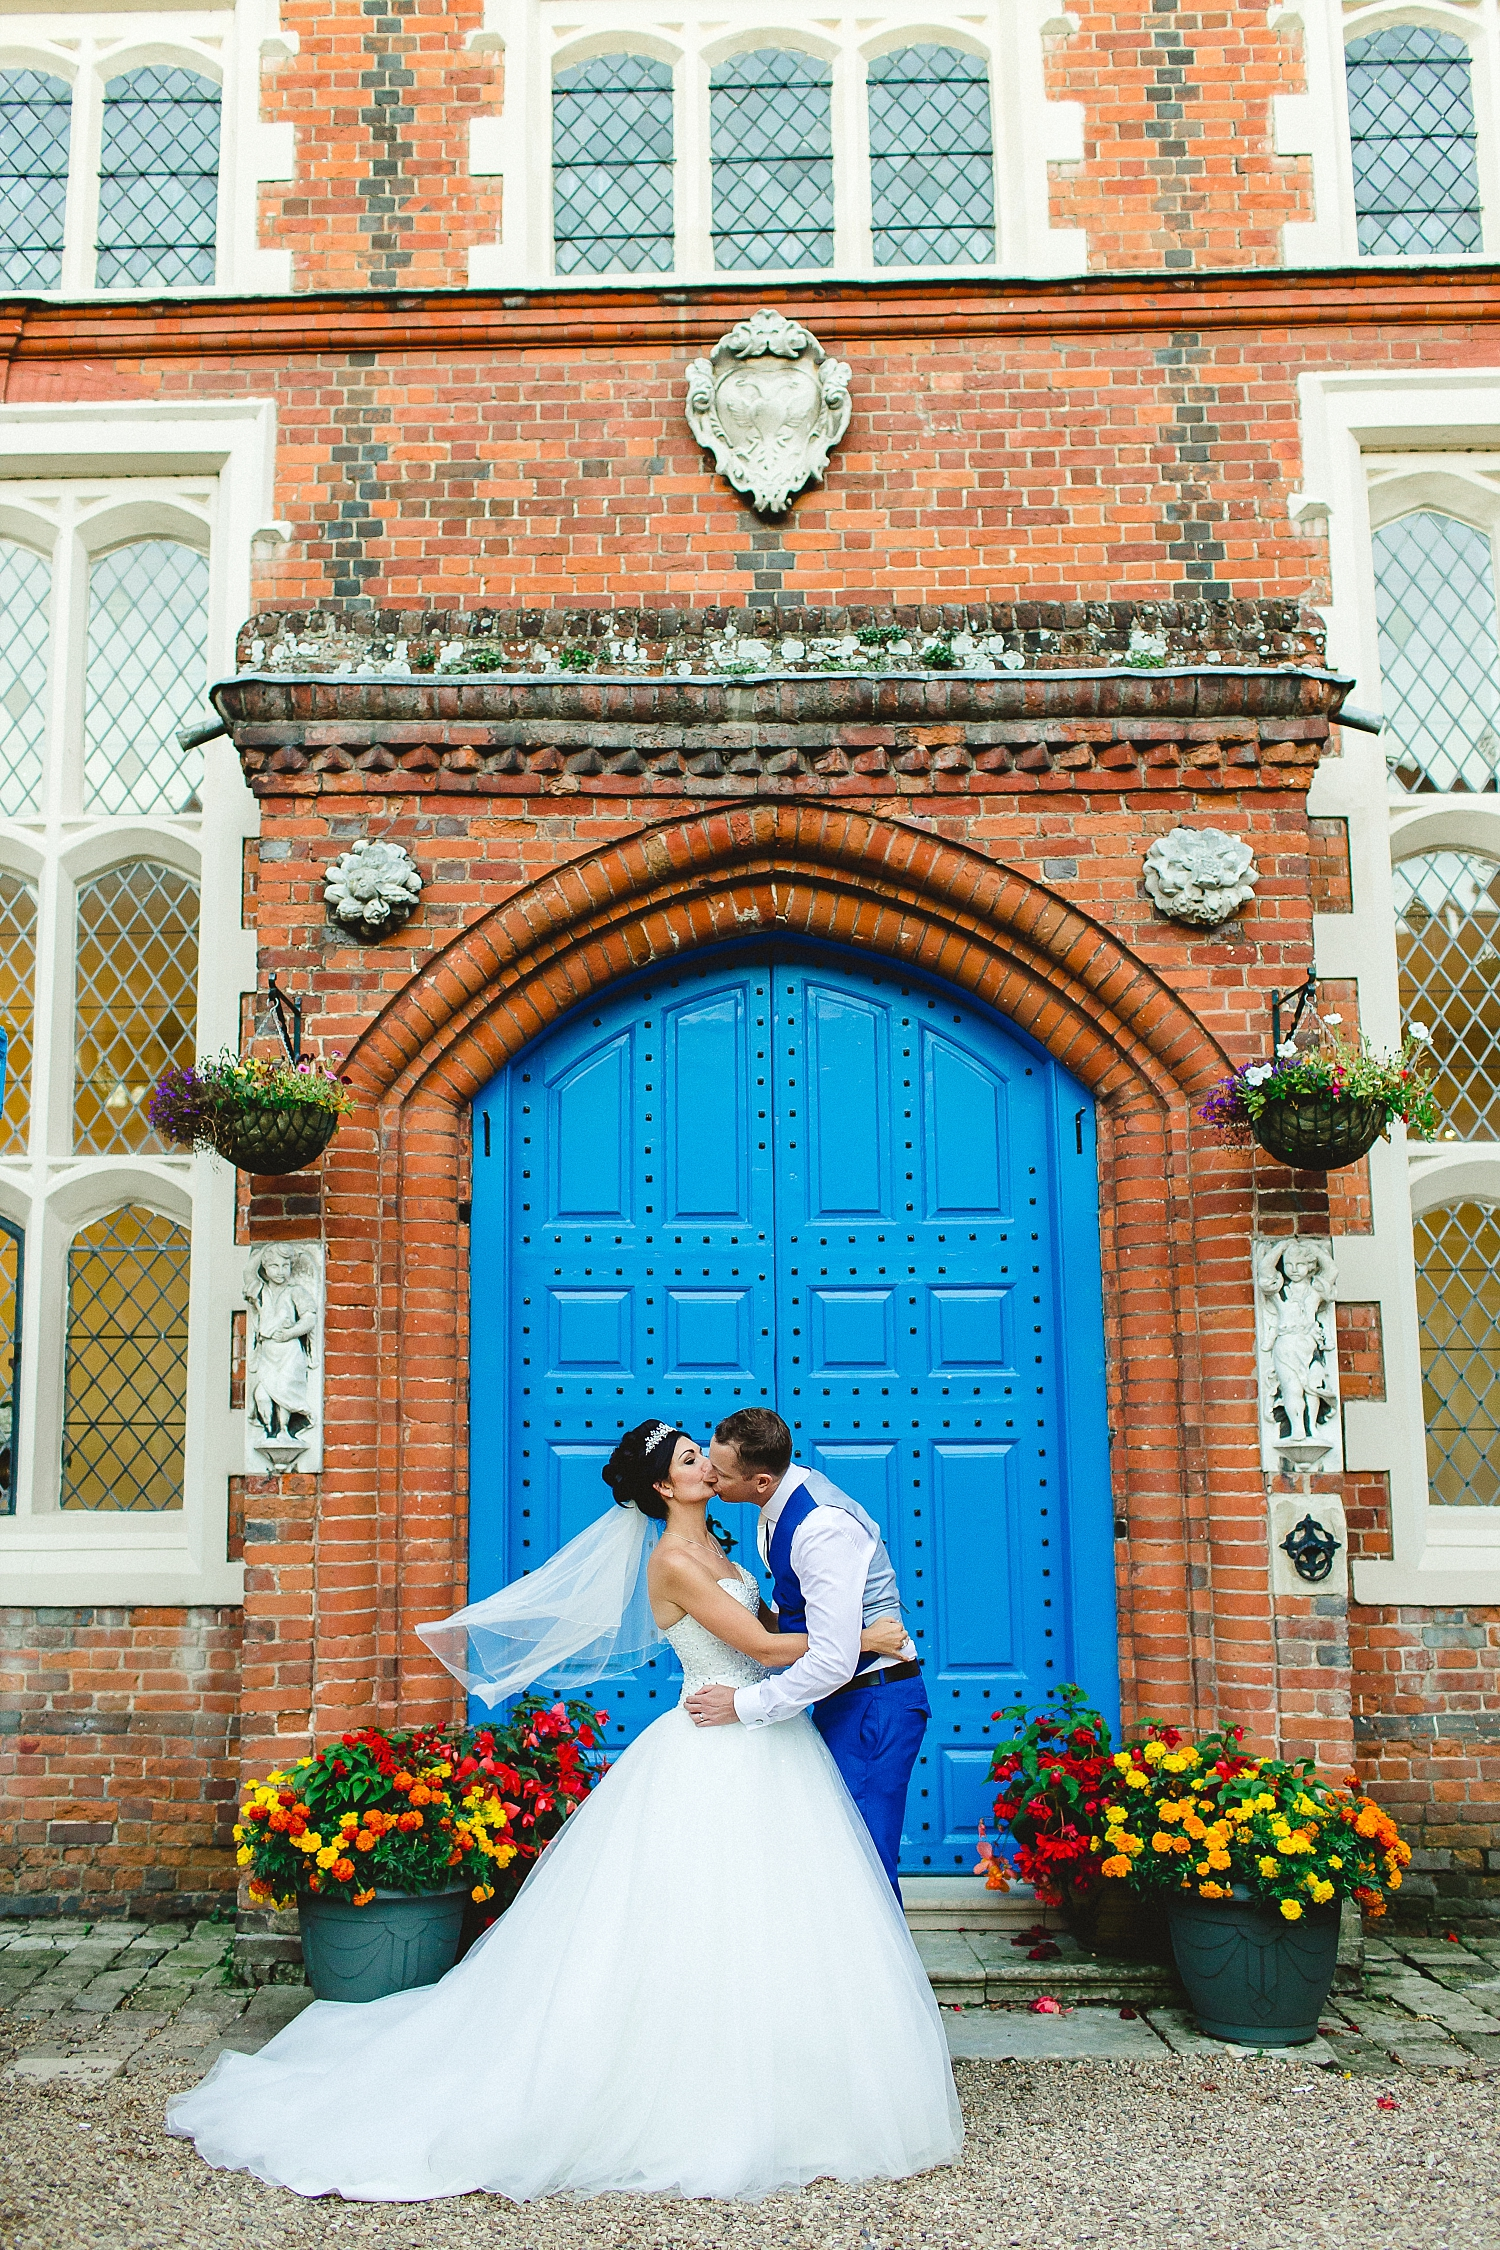 Gosfield_Hall_Essex_Wedding_Photographer_0099.jpg